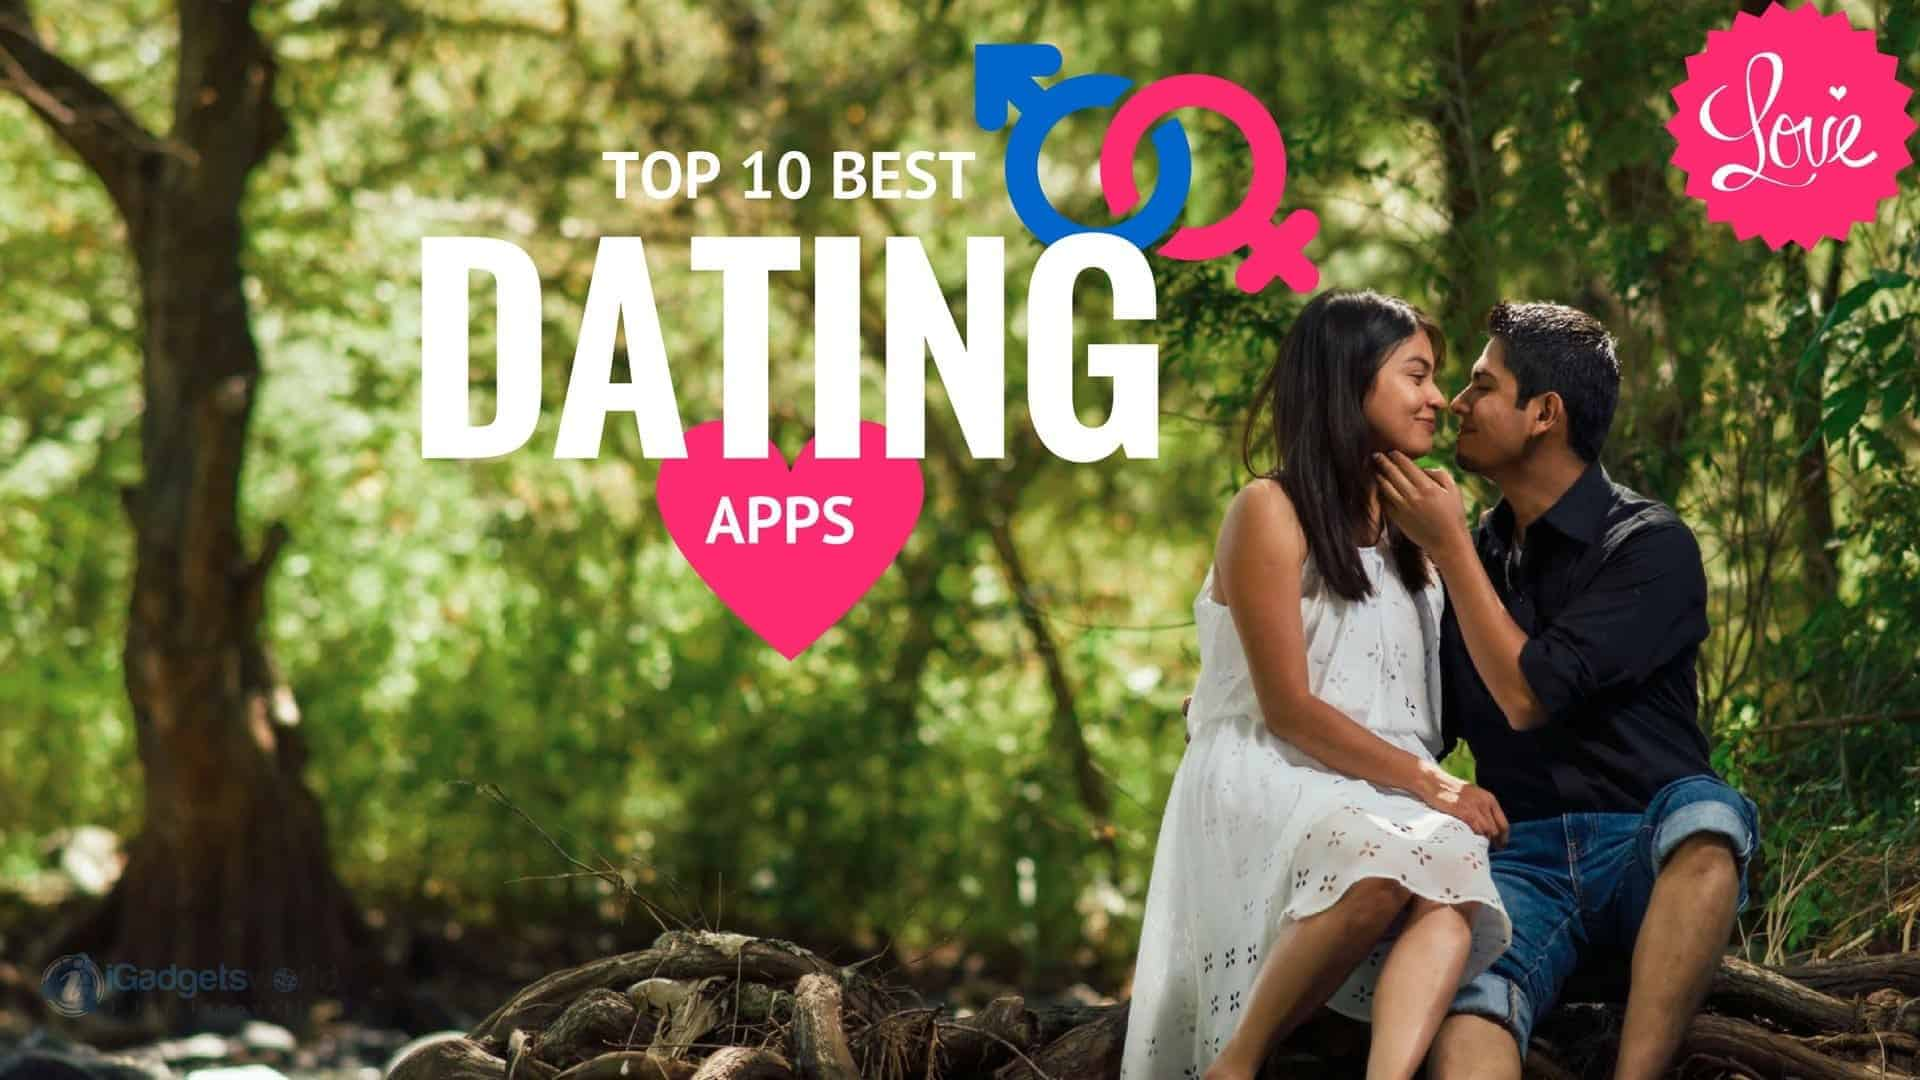 Dating apps 2019 india